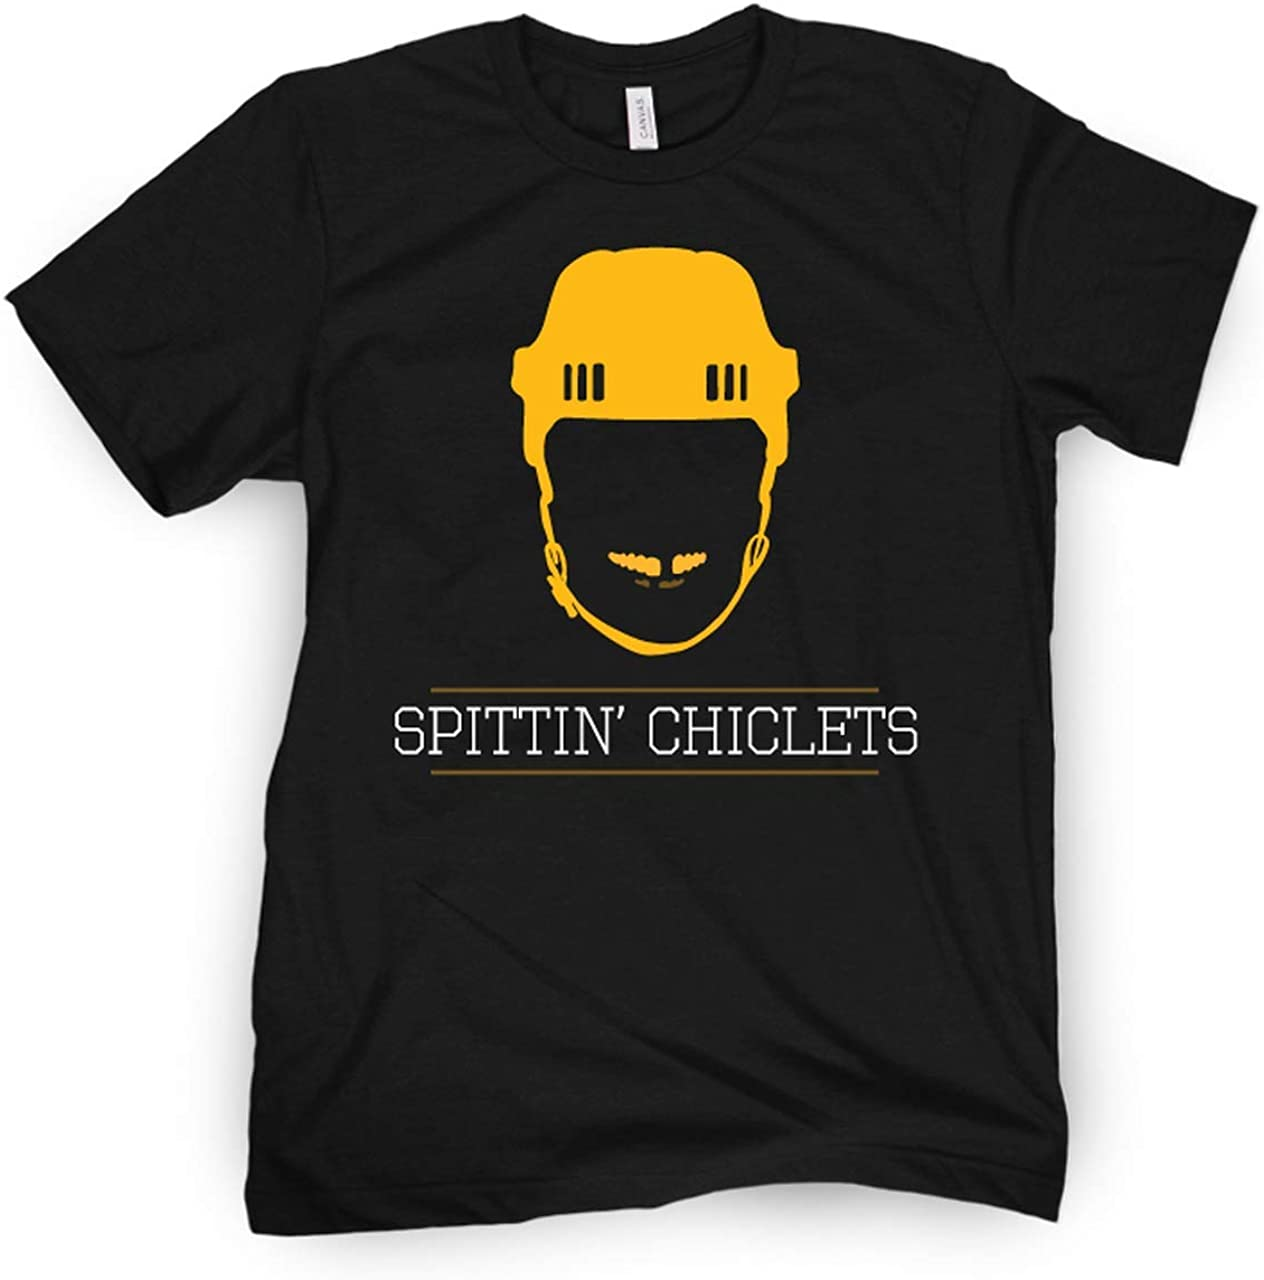 Barstool Sports Spittin Chiclets T-Shirt from, Perfect for Tailgating College Fraternities Weekend Sports